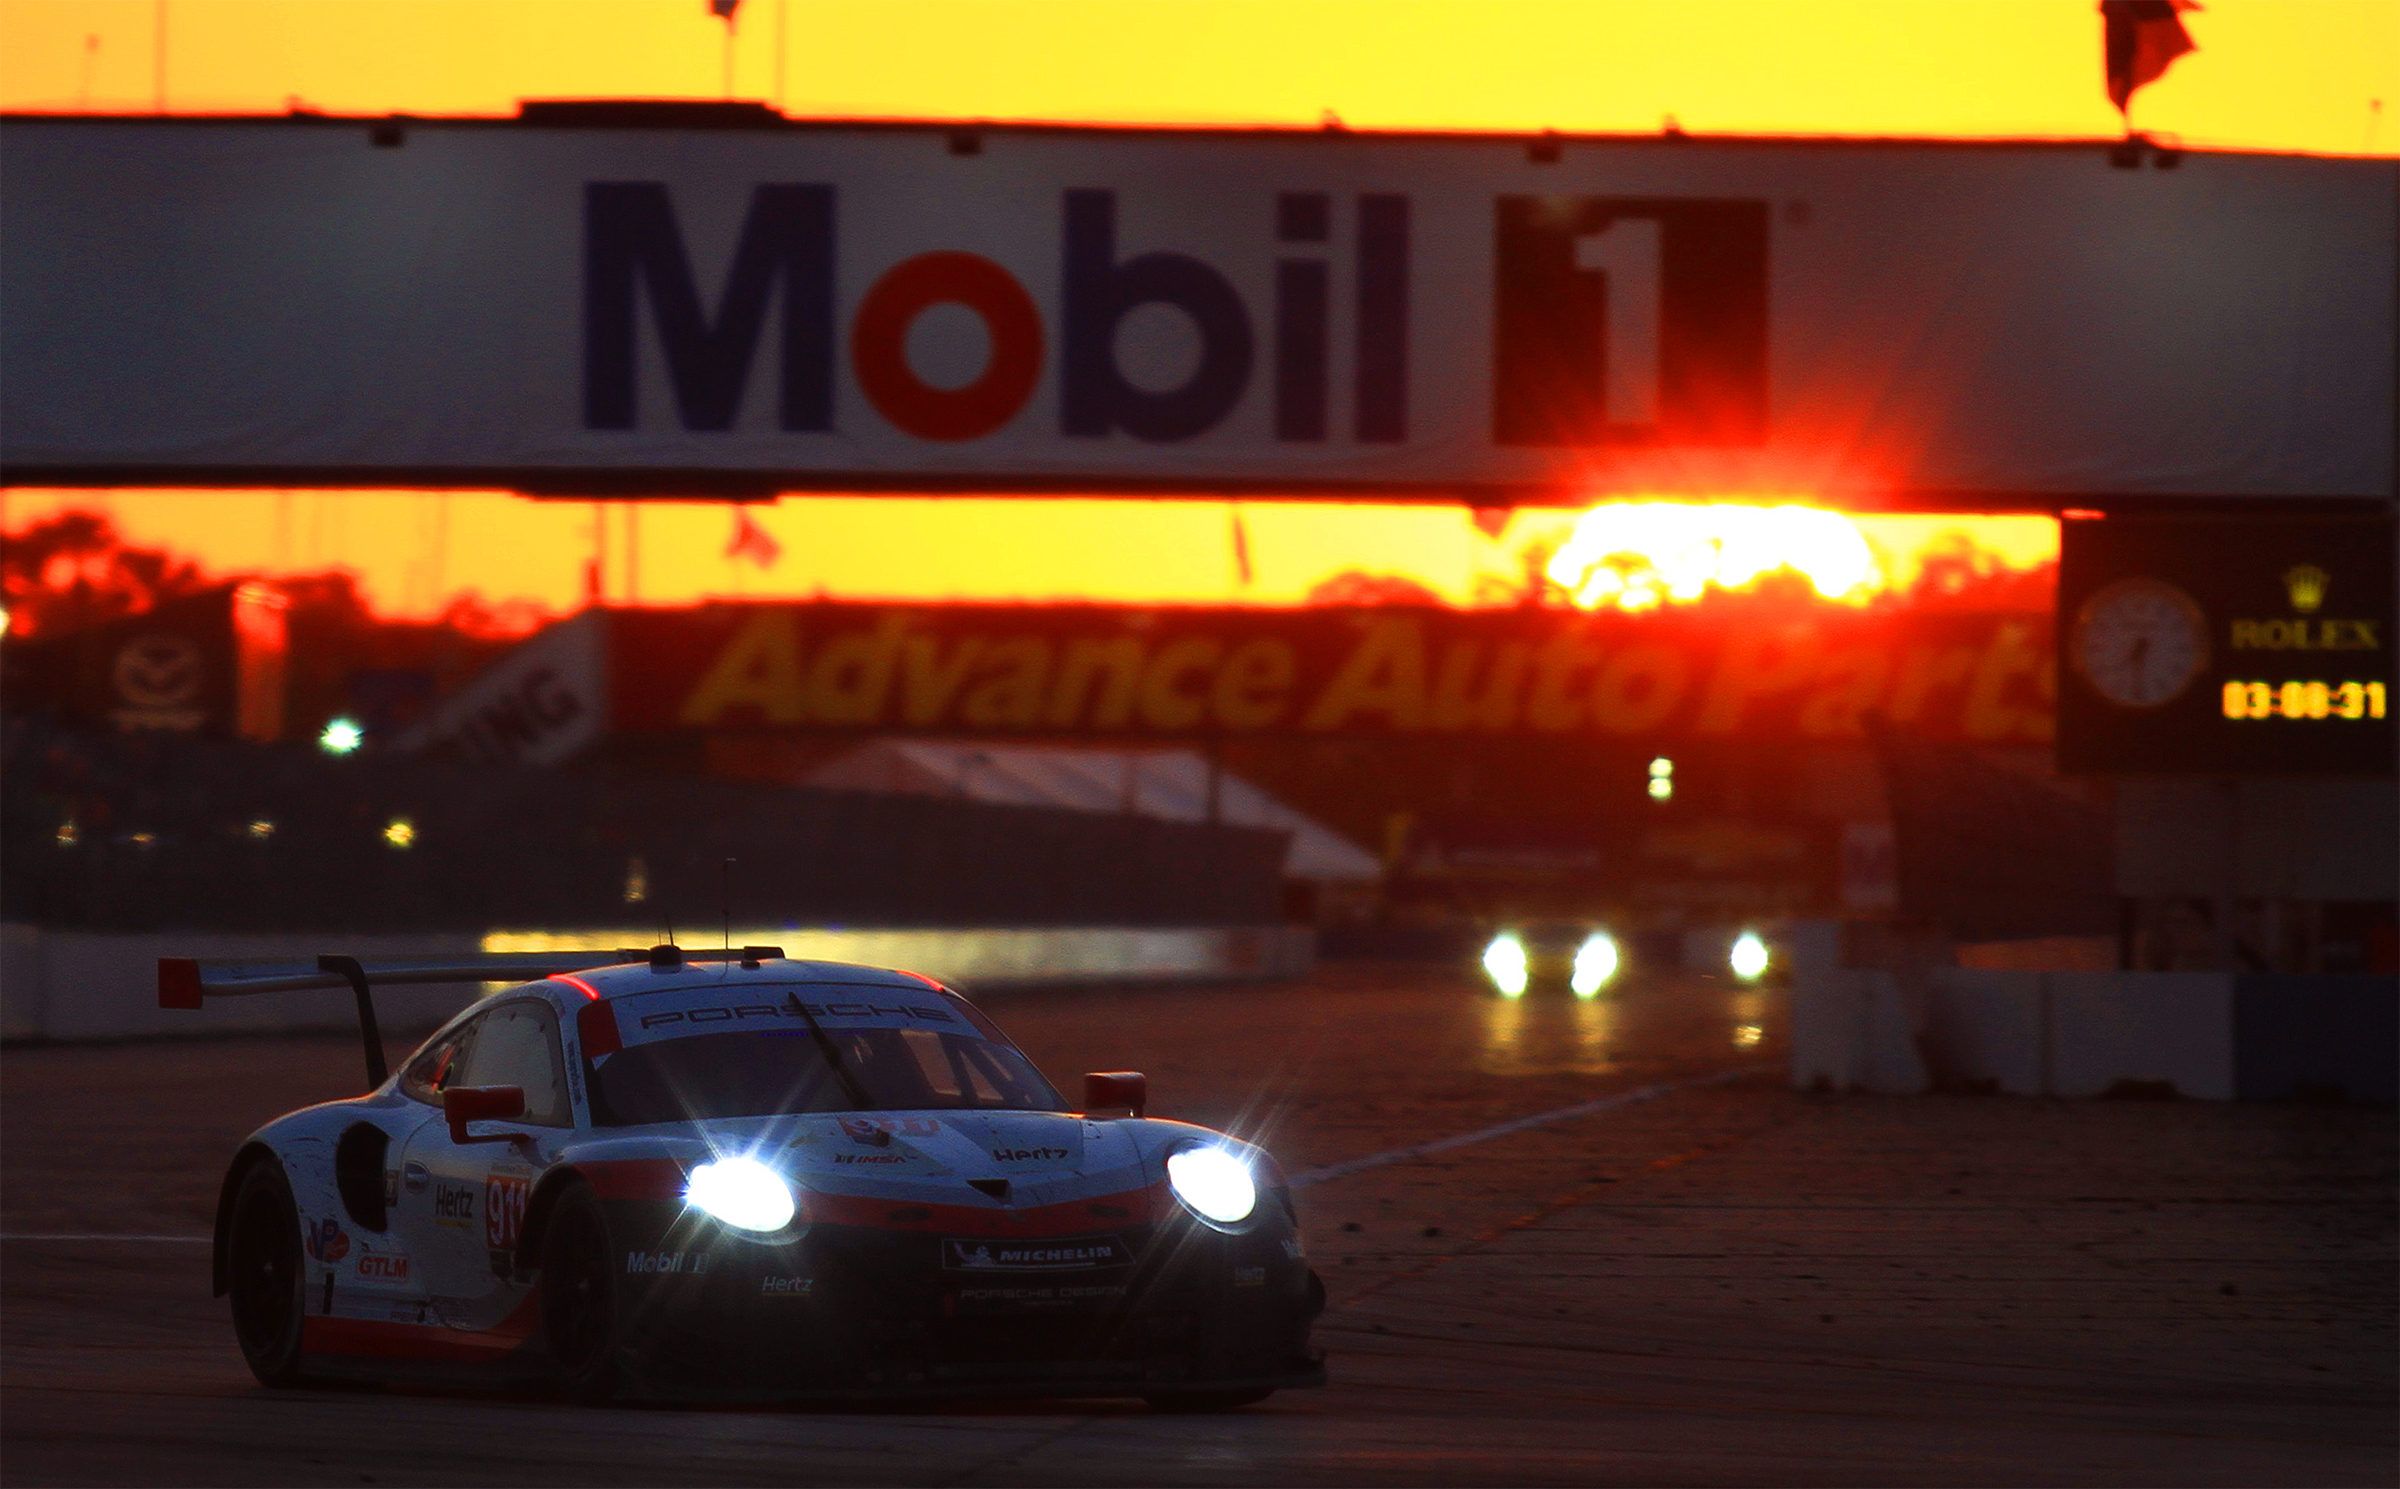 The #911 Porsche got faster as the day got later, leaving behind the #62 Risi Ferrari and eventually winning its duel with the #25 BMW. (Chris Jasurek/Epoch Times)